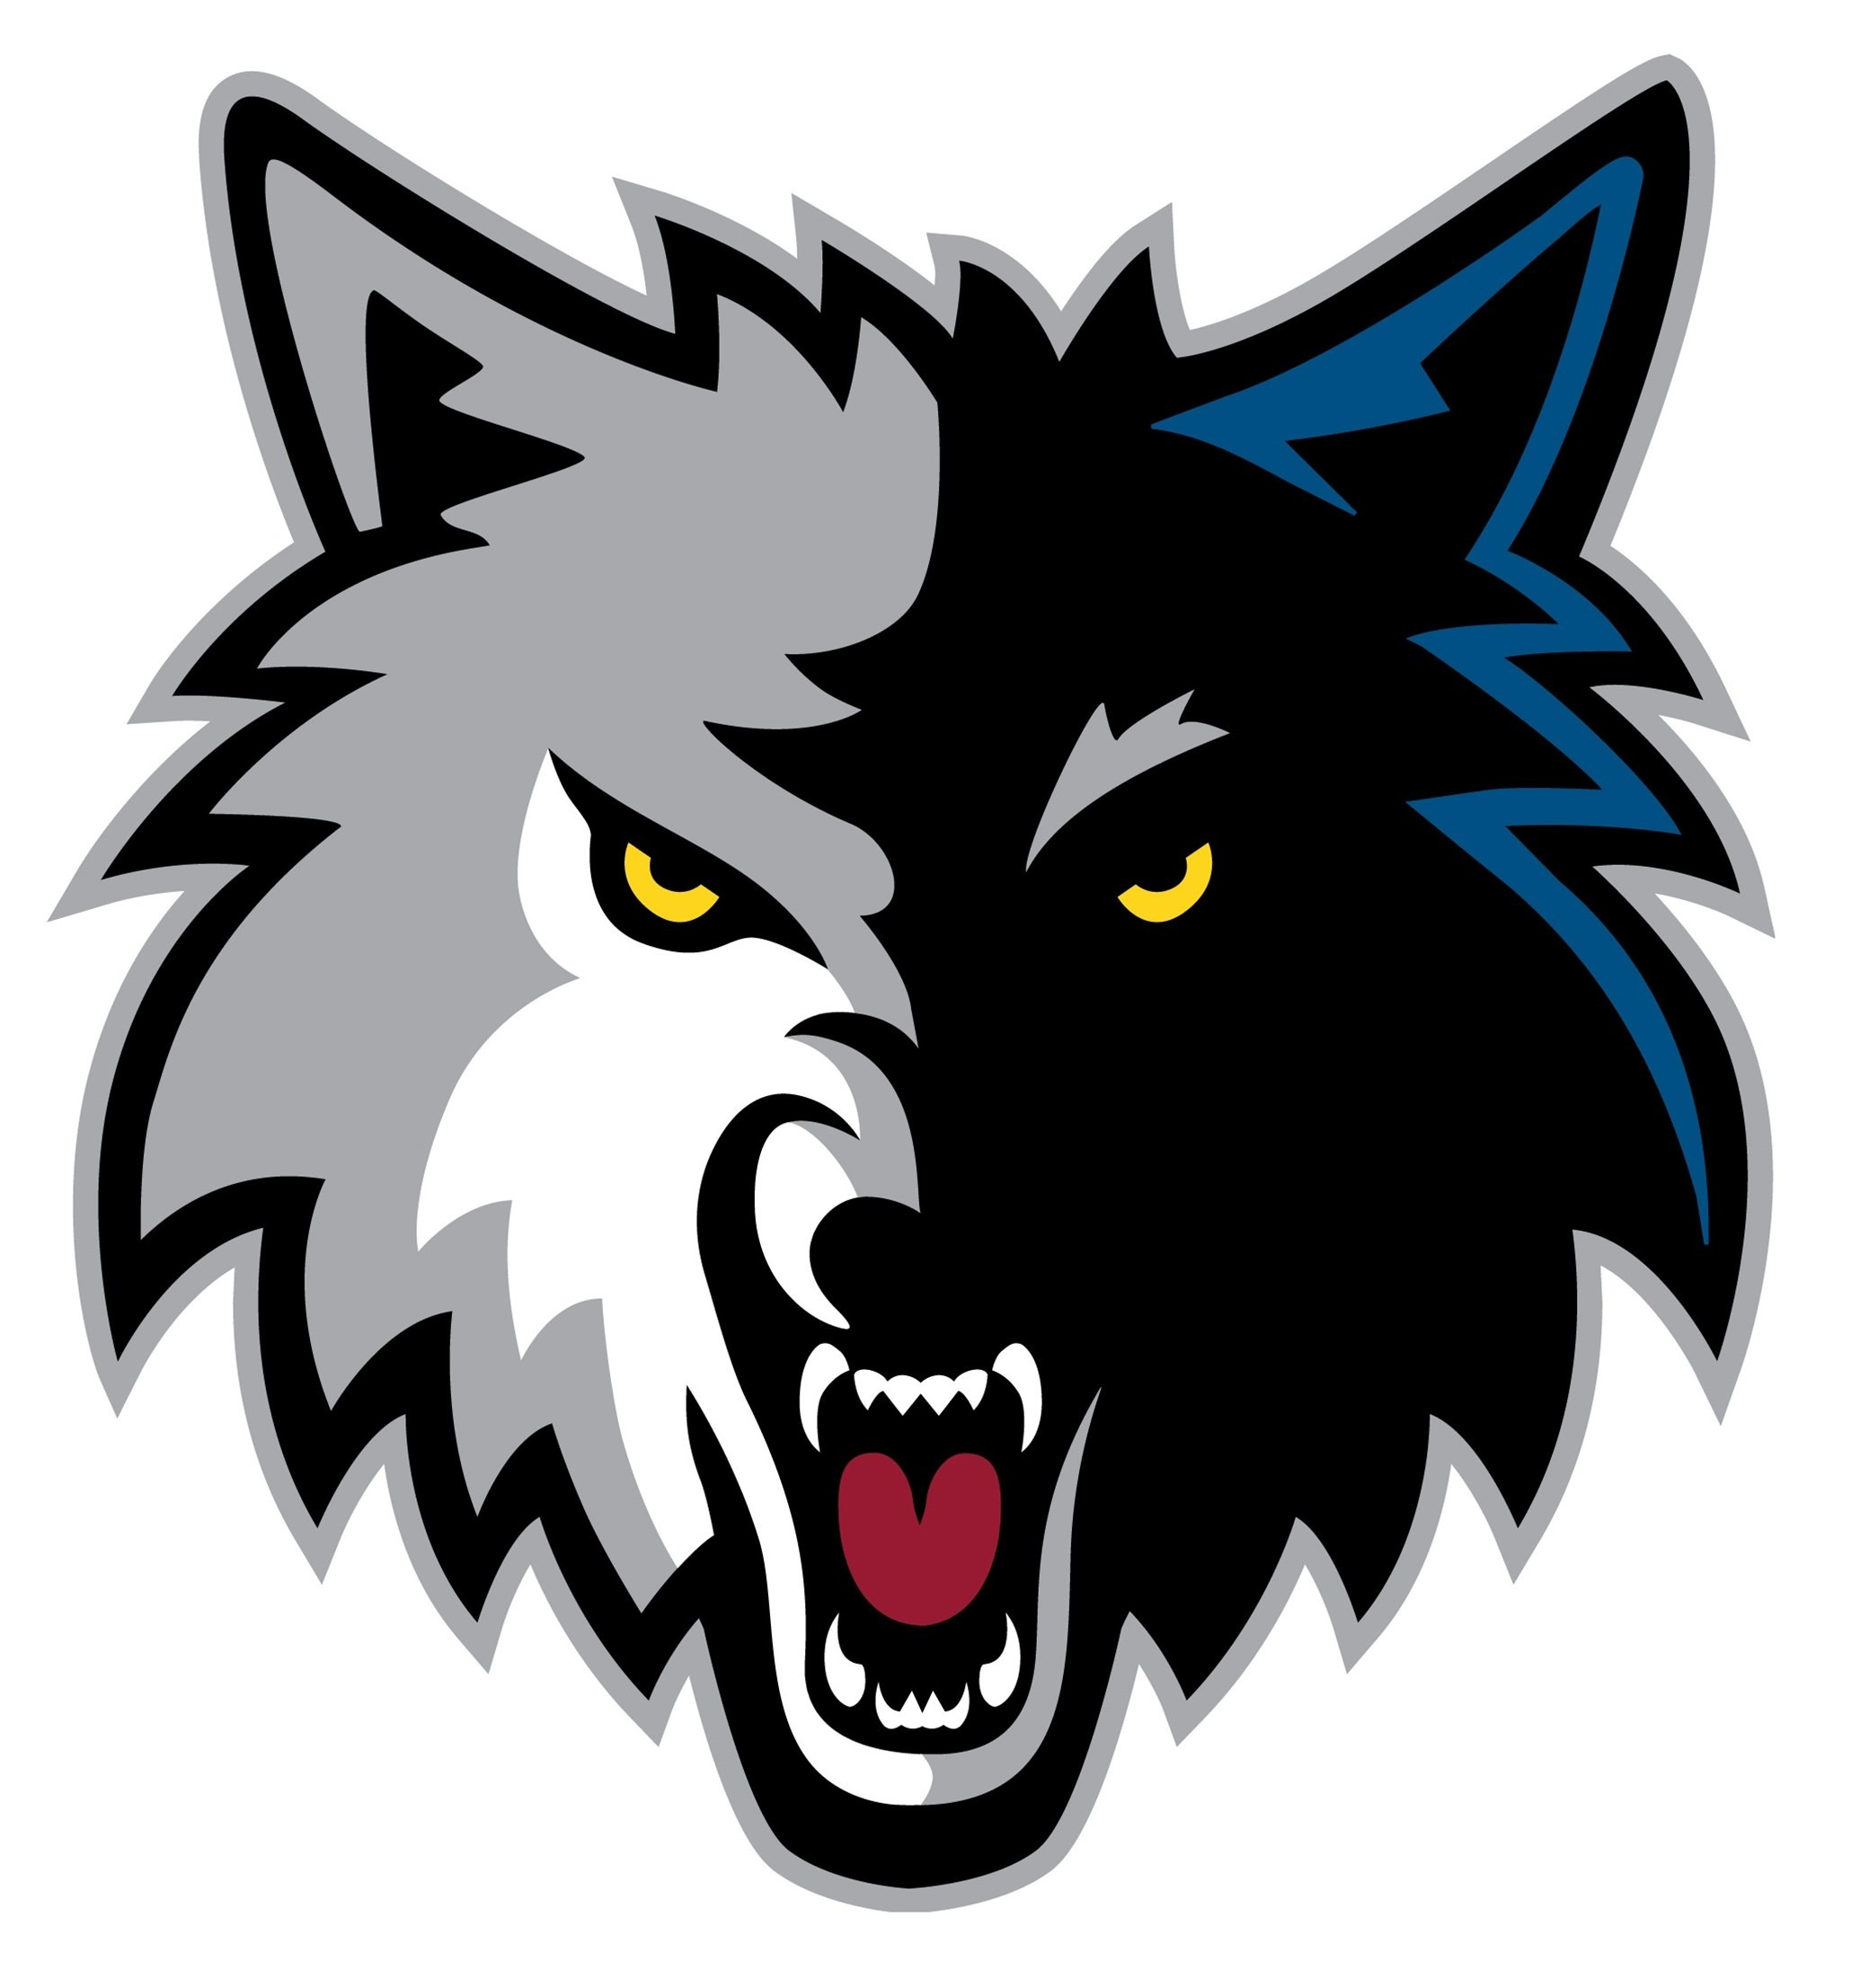 2060x2213 Download minnesota timberwolves logo wallpaper